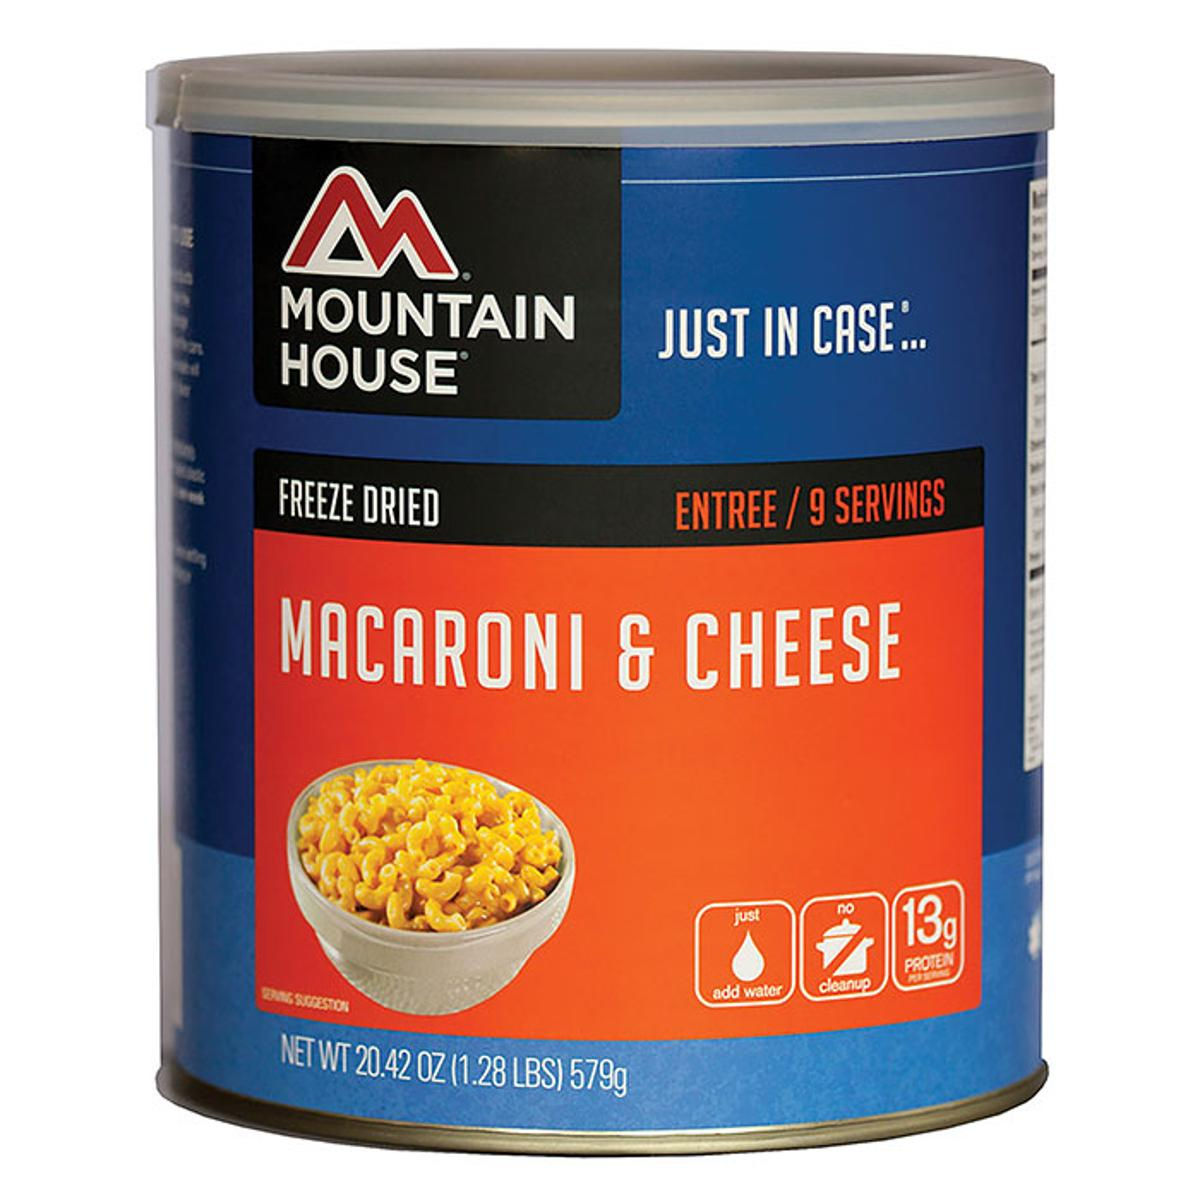 Mountain House Macaroni and Cheese #10 Can by Mountain House